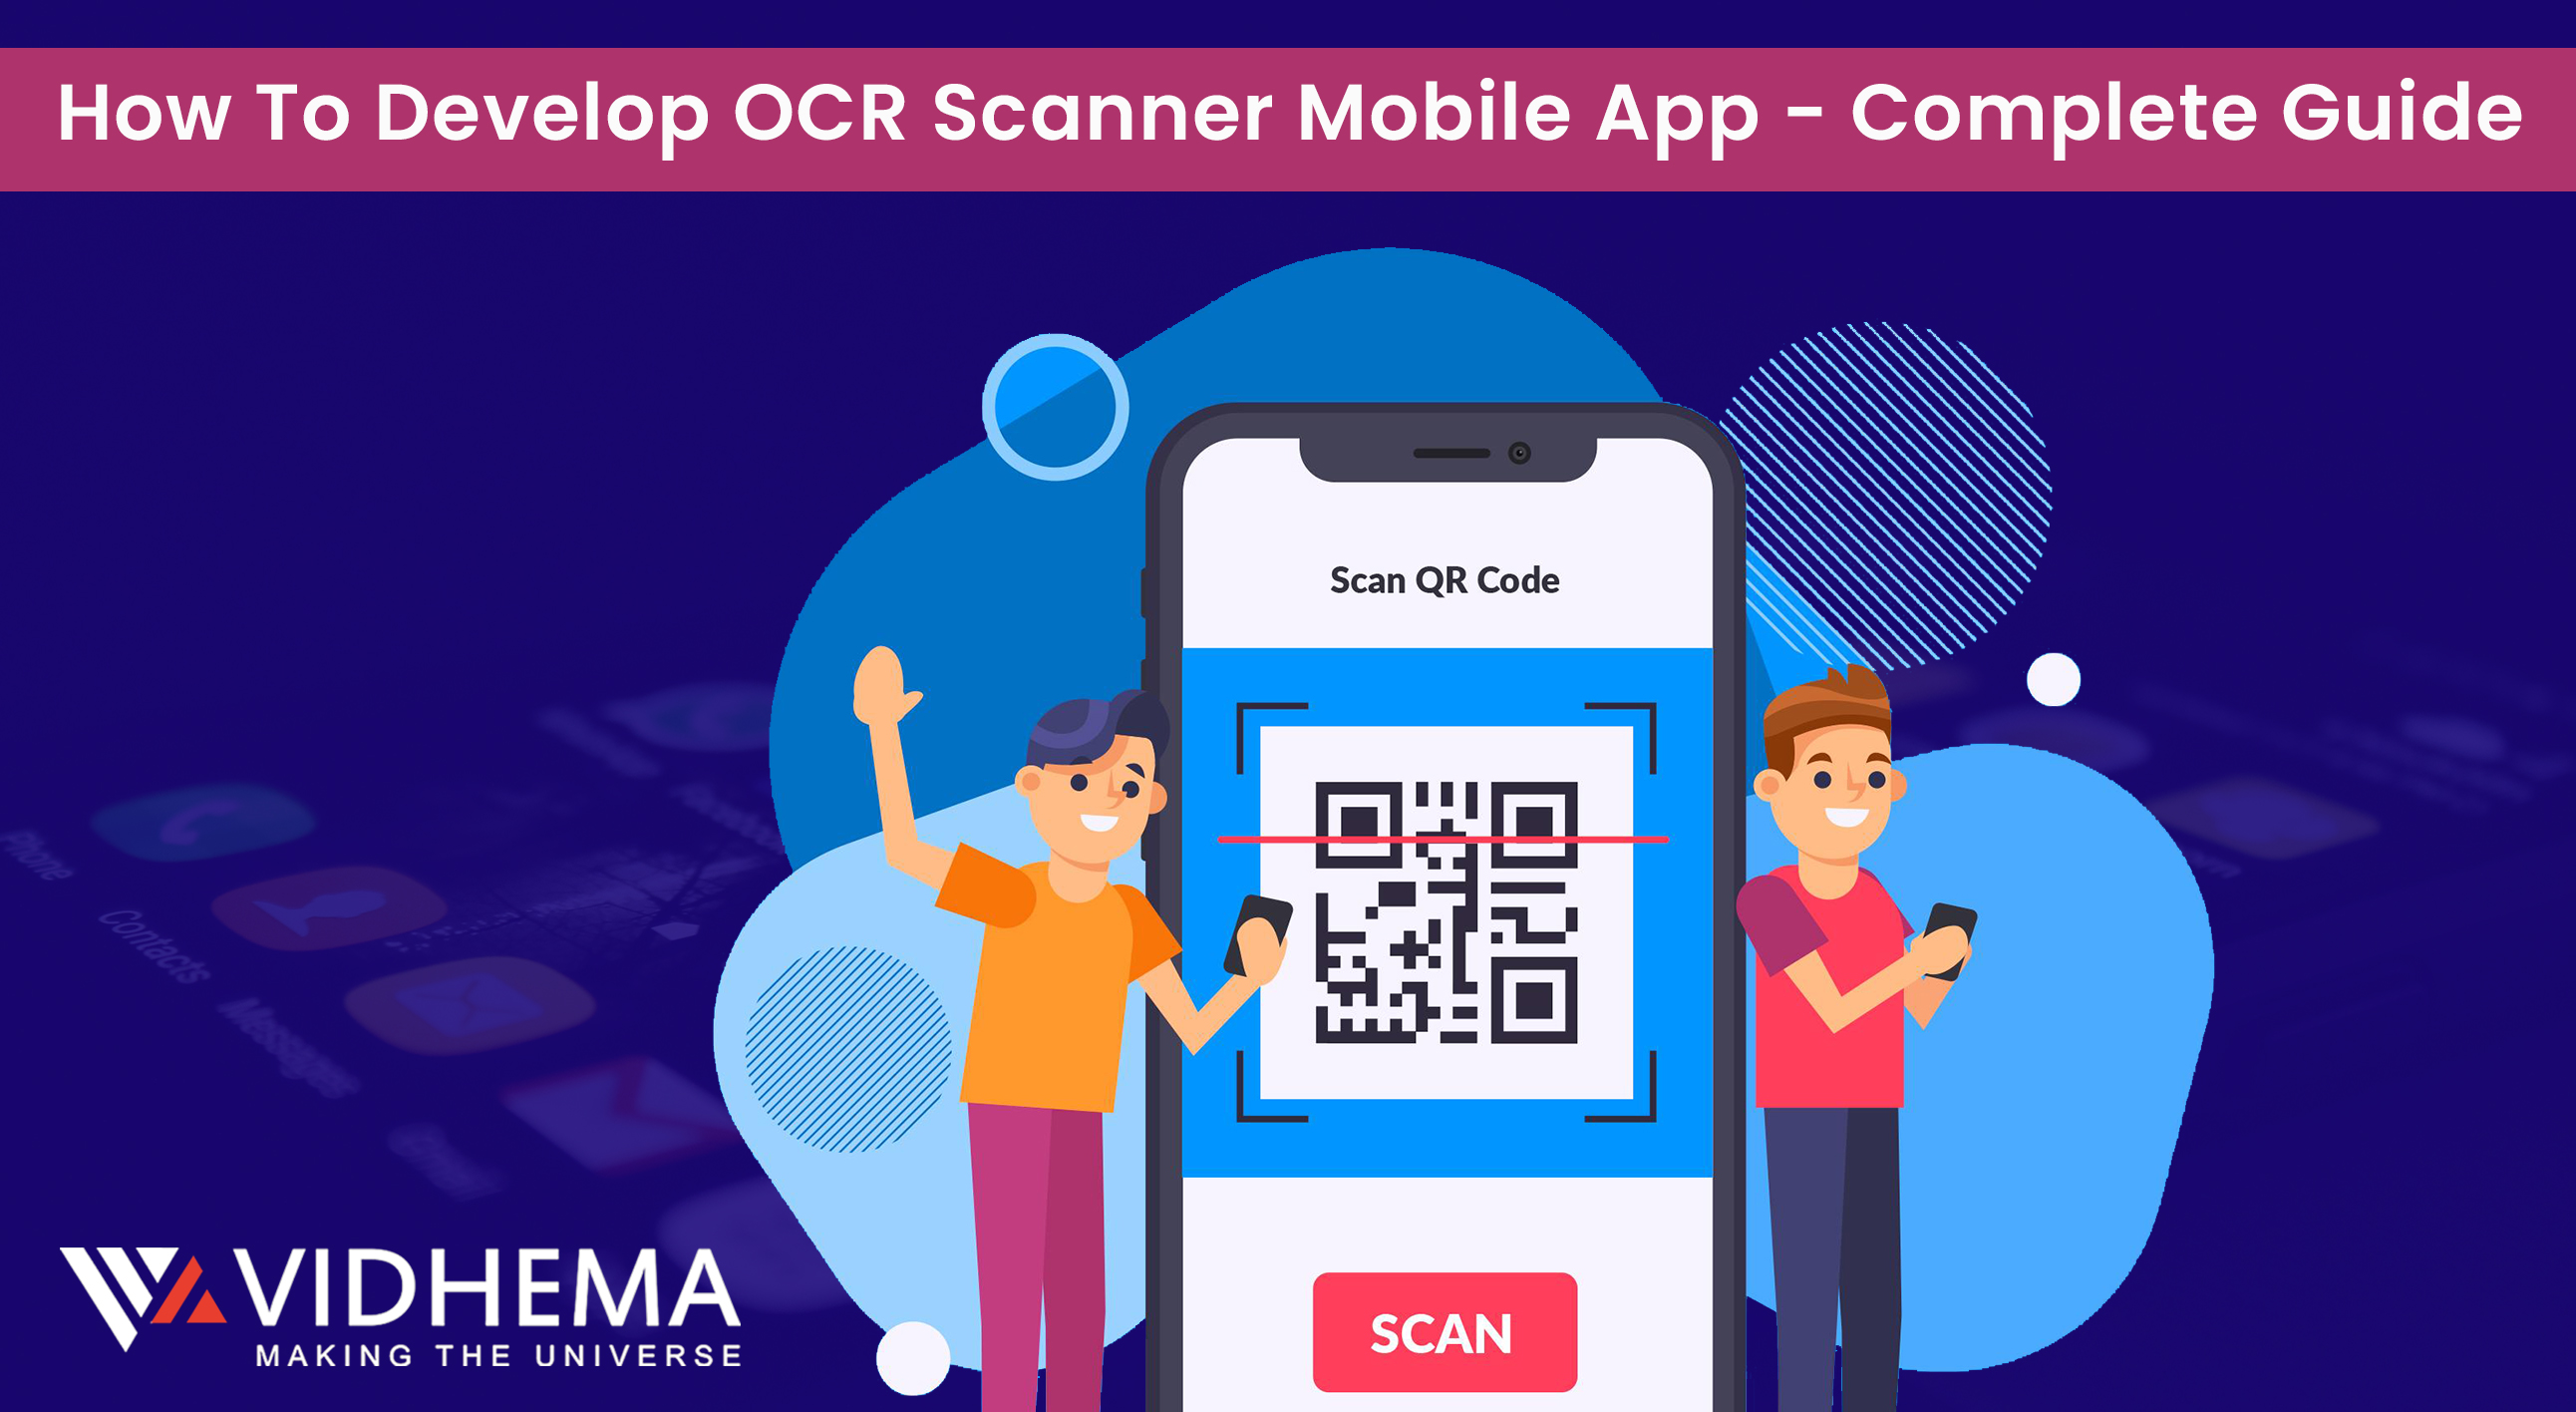 How to Develop OCR Scanner Mobile App - Complete Guide